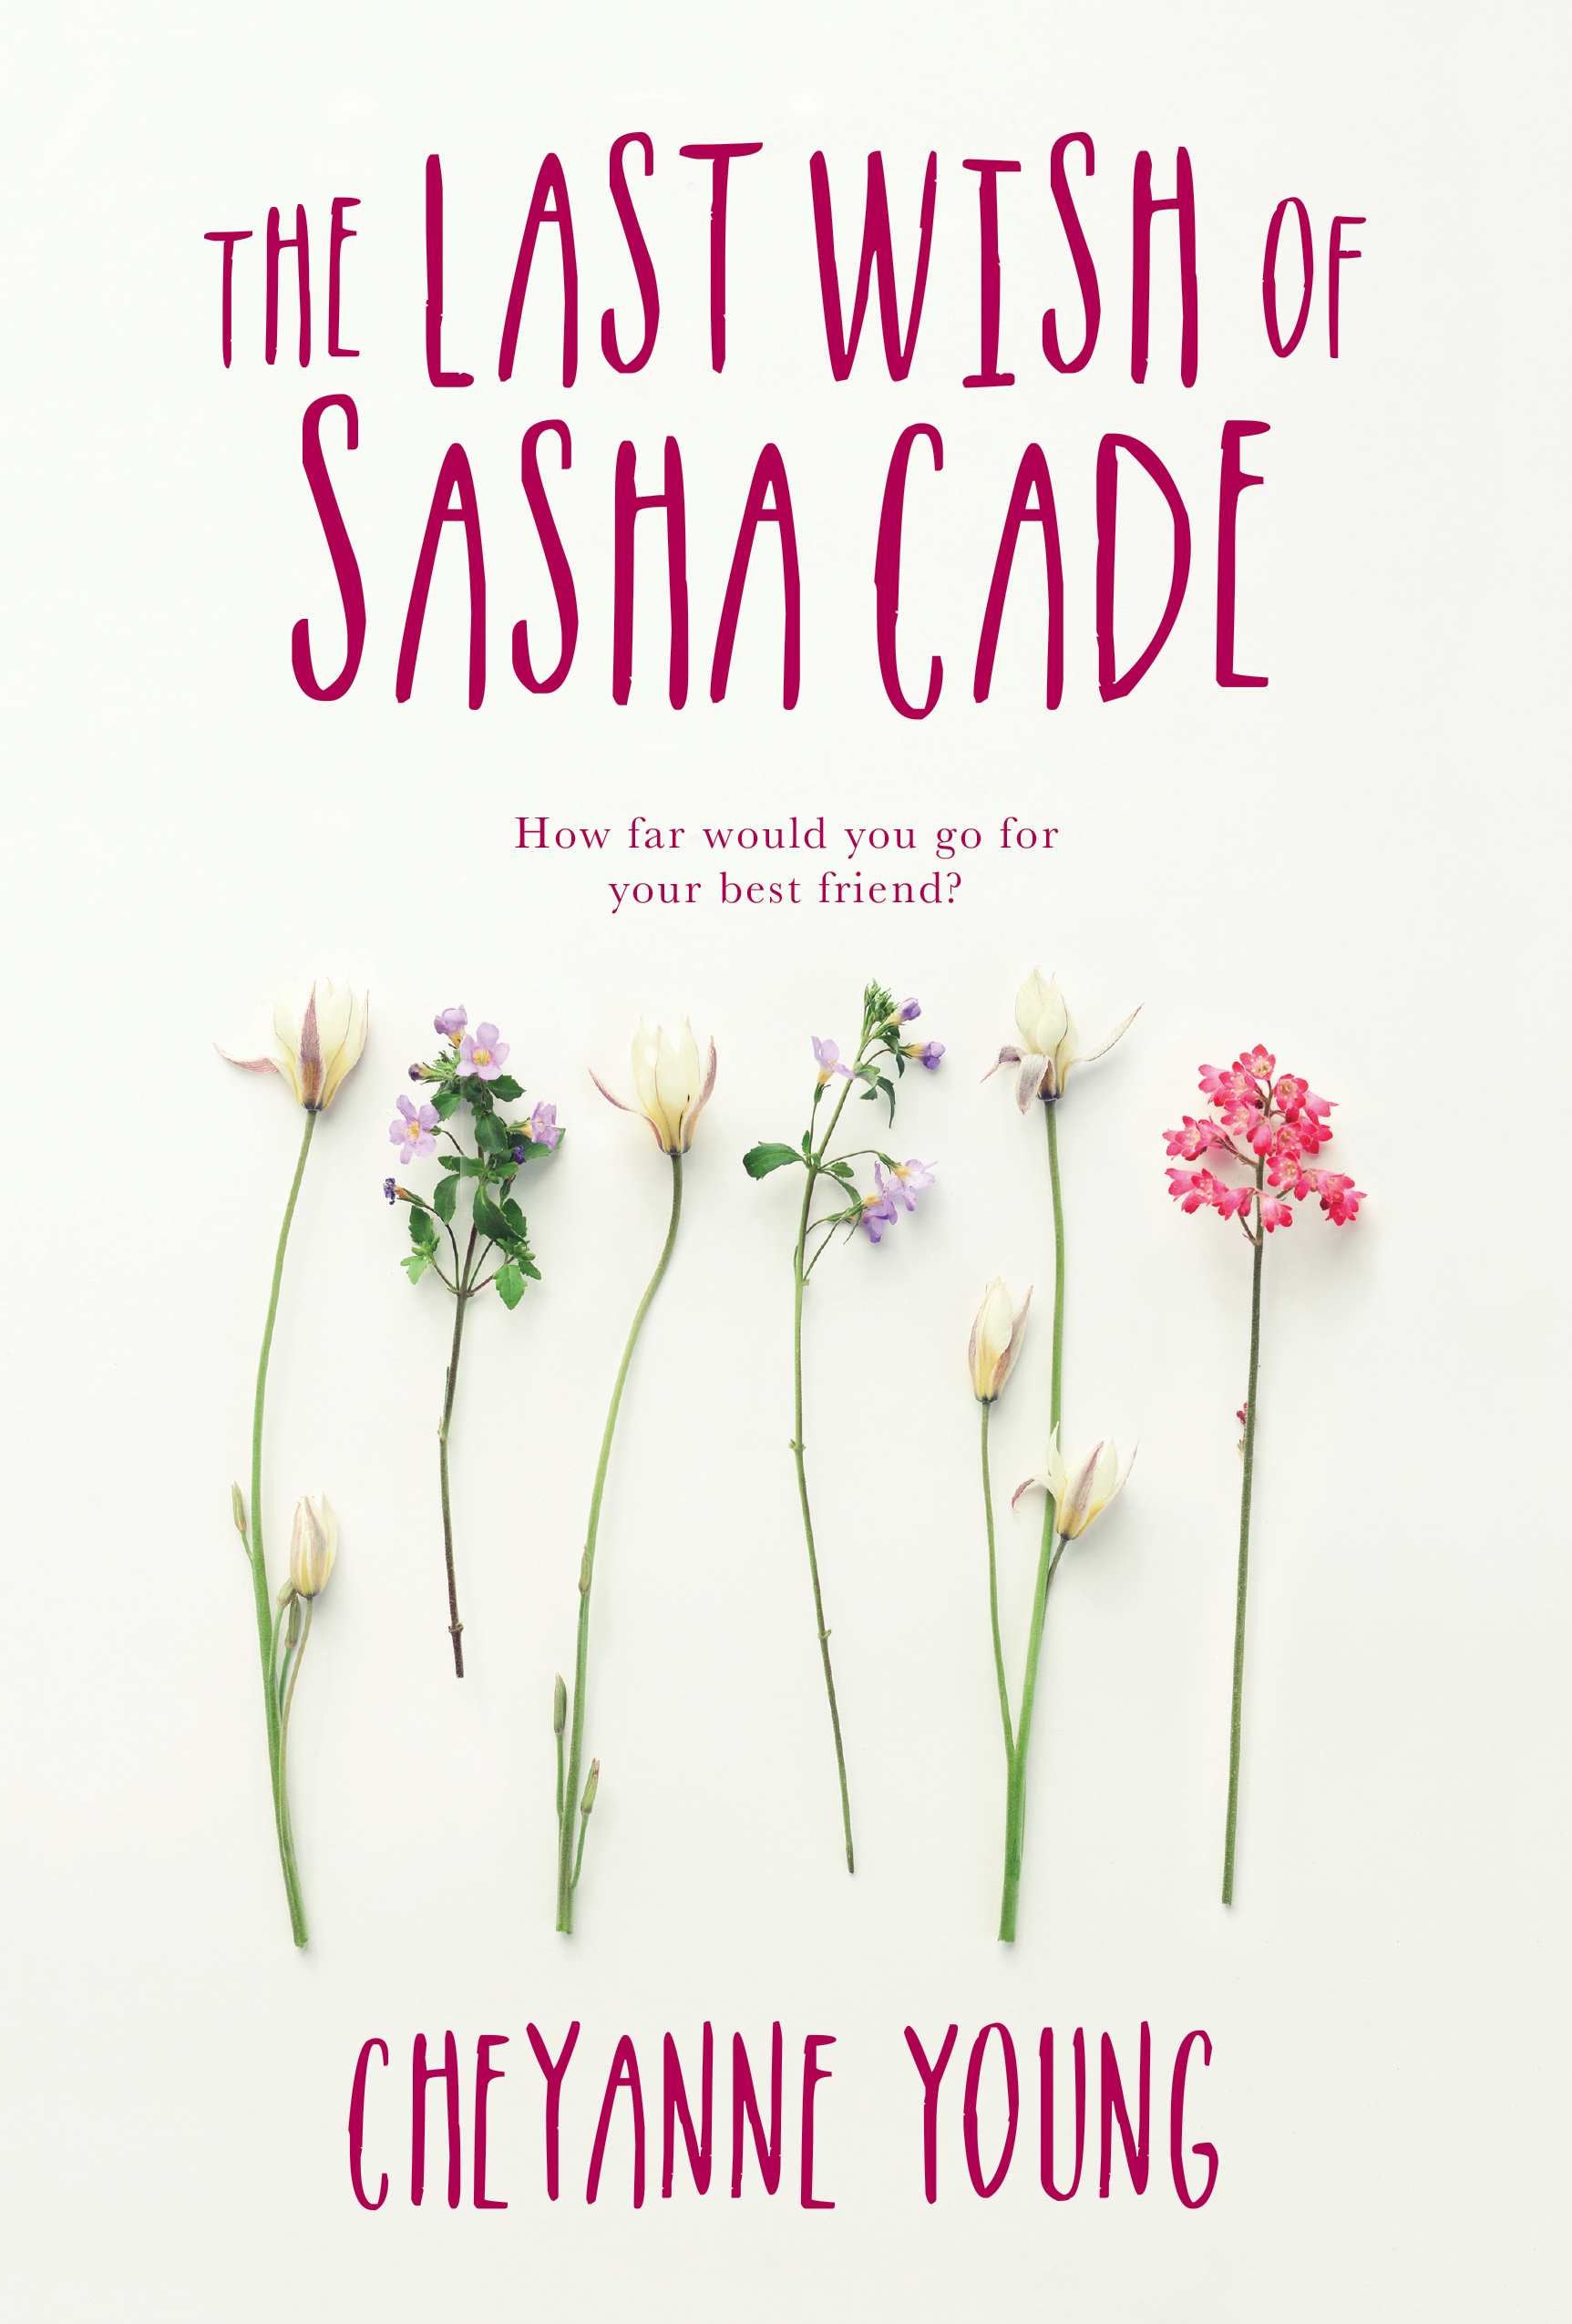 Book Cover for YA Novel - The Last Wish of Sasha Cade by author Cheyanne Young